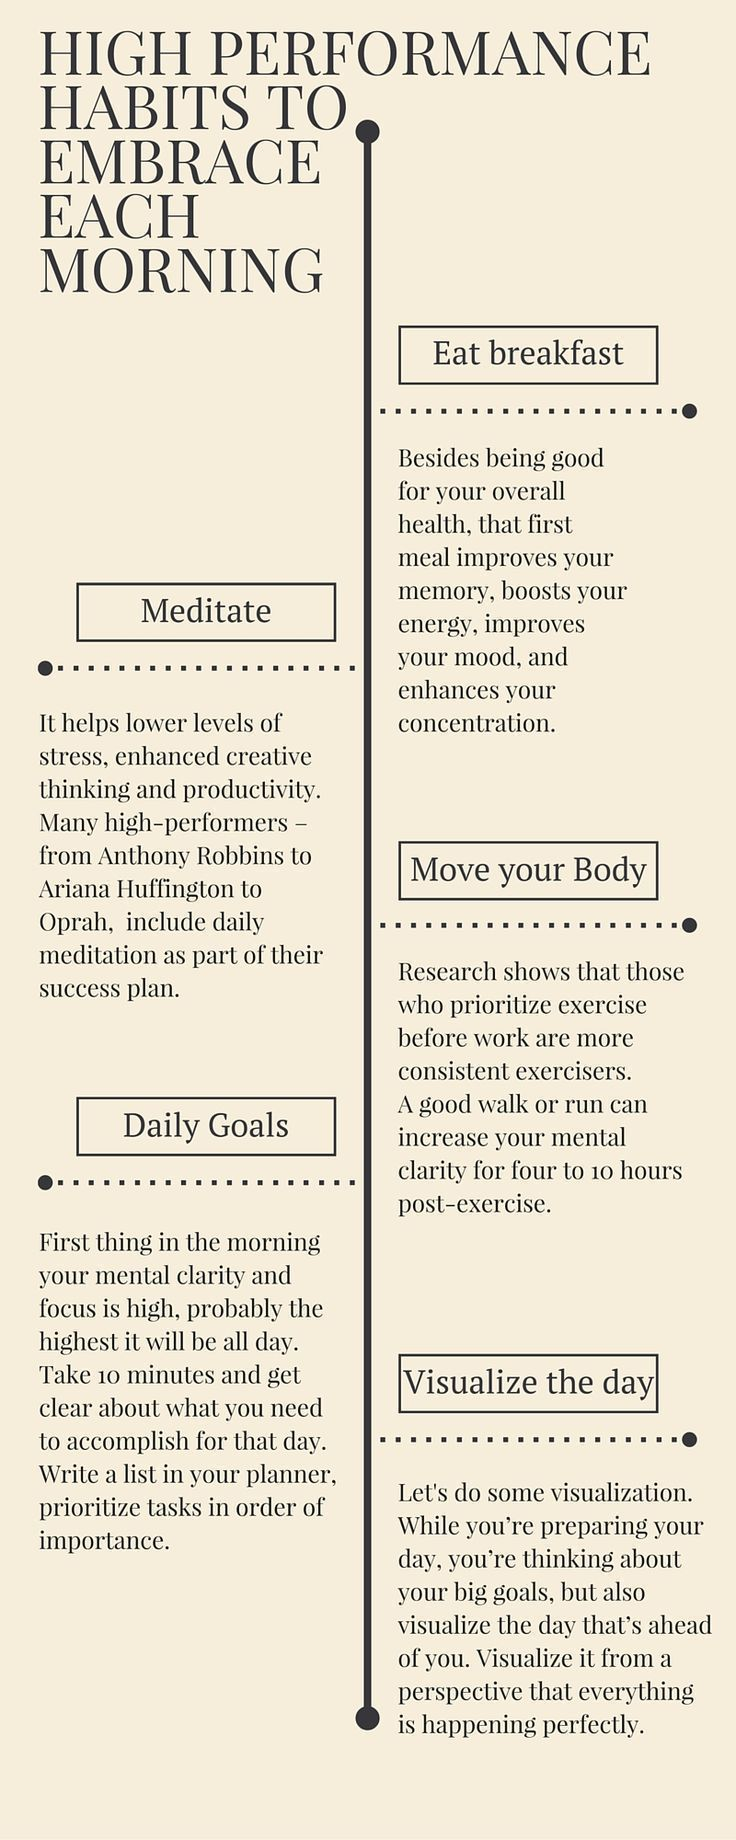 Best Purposeful Mornings Images On Pinterest Bed Drawings - 10 of the most successful entrepreneurs reveal their secret morning rituals